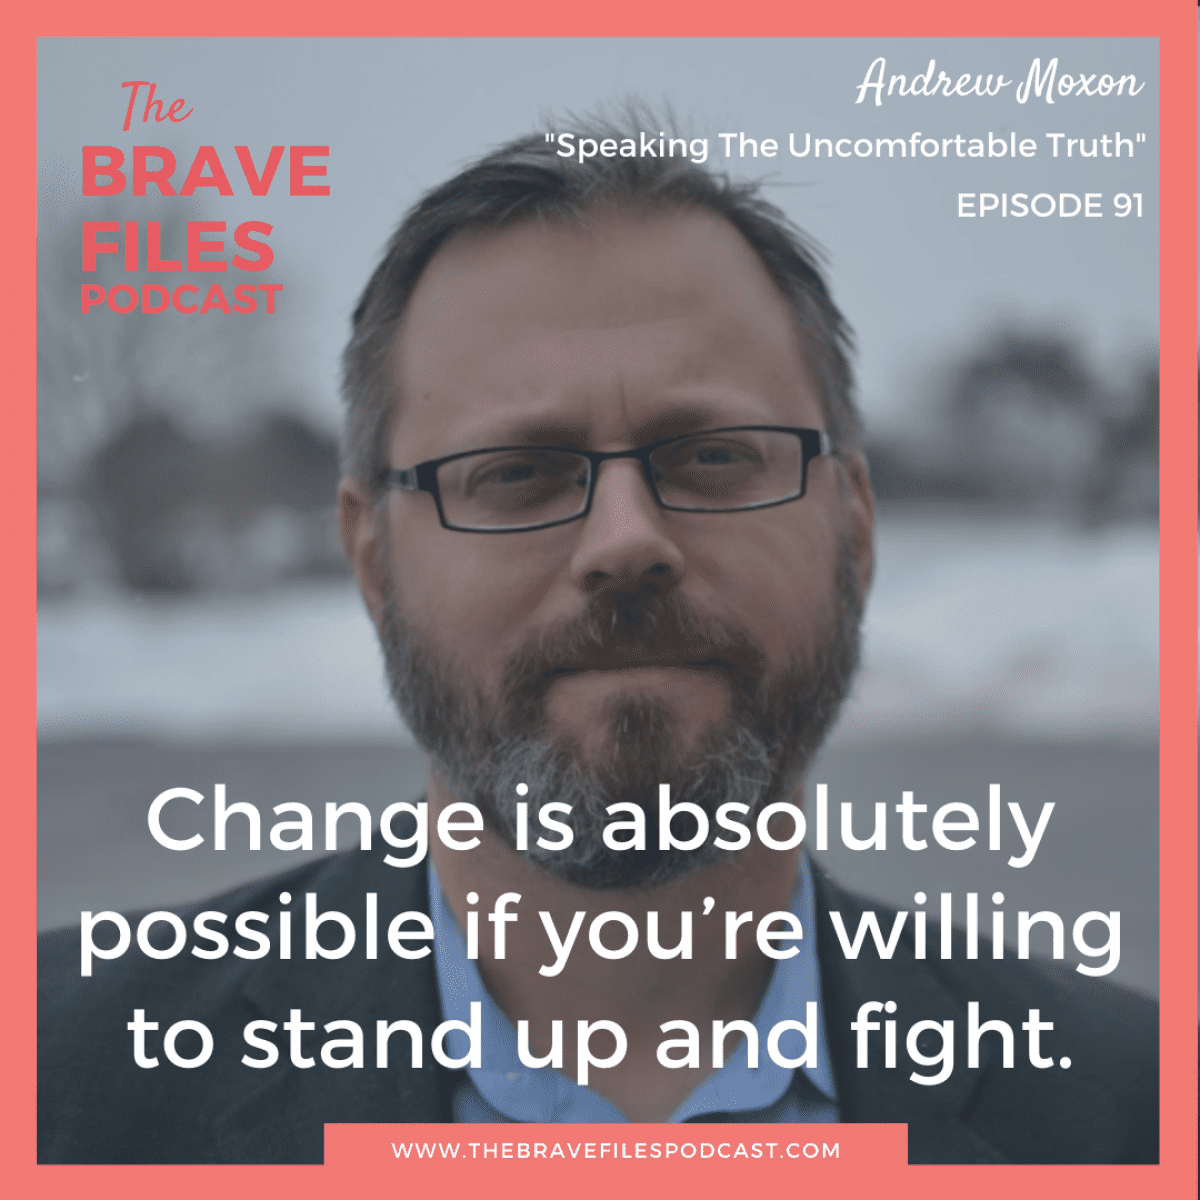 """Andrew Moxon is a writer who went viral on Twitter after comparing microaggressions of general violence towards women to being """"kicked in the balls."""" He chooses to create an atmosphere of change, because we CAN make a difference if we stand up and fight! The Brave Files."""